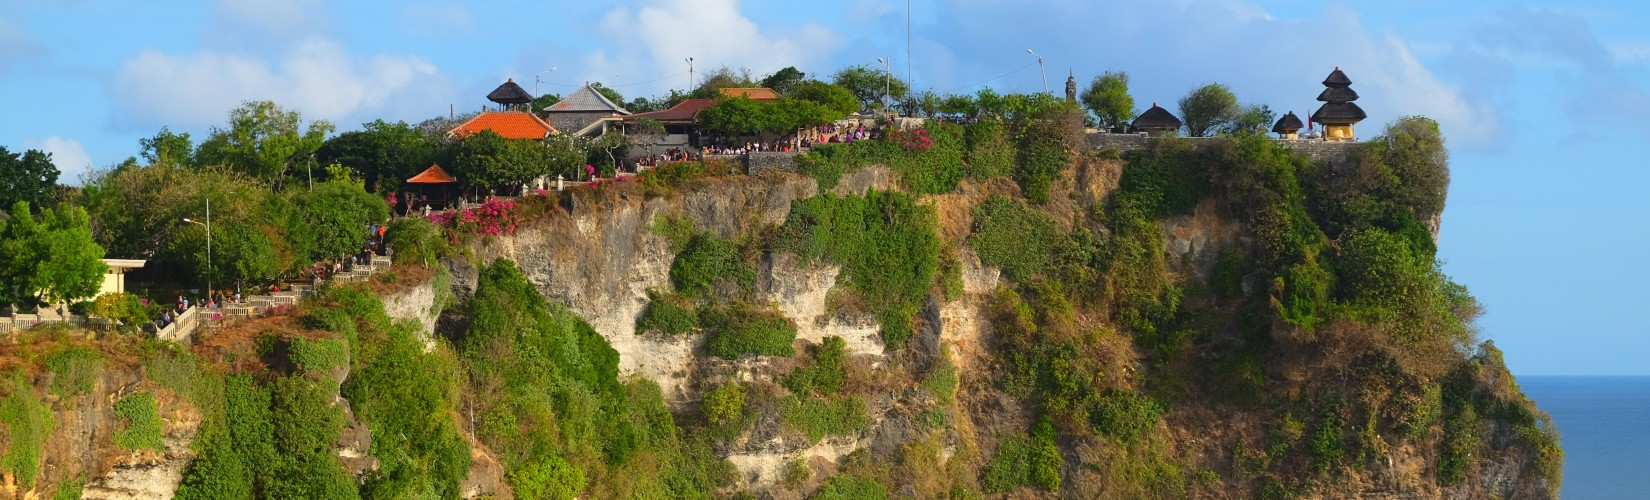 Luhur Uluwatu: Iconic cliffside Sea Temple in Bali